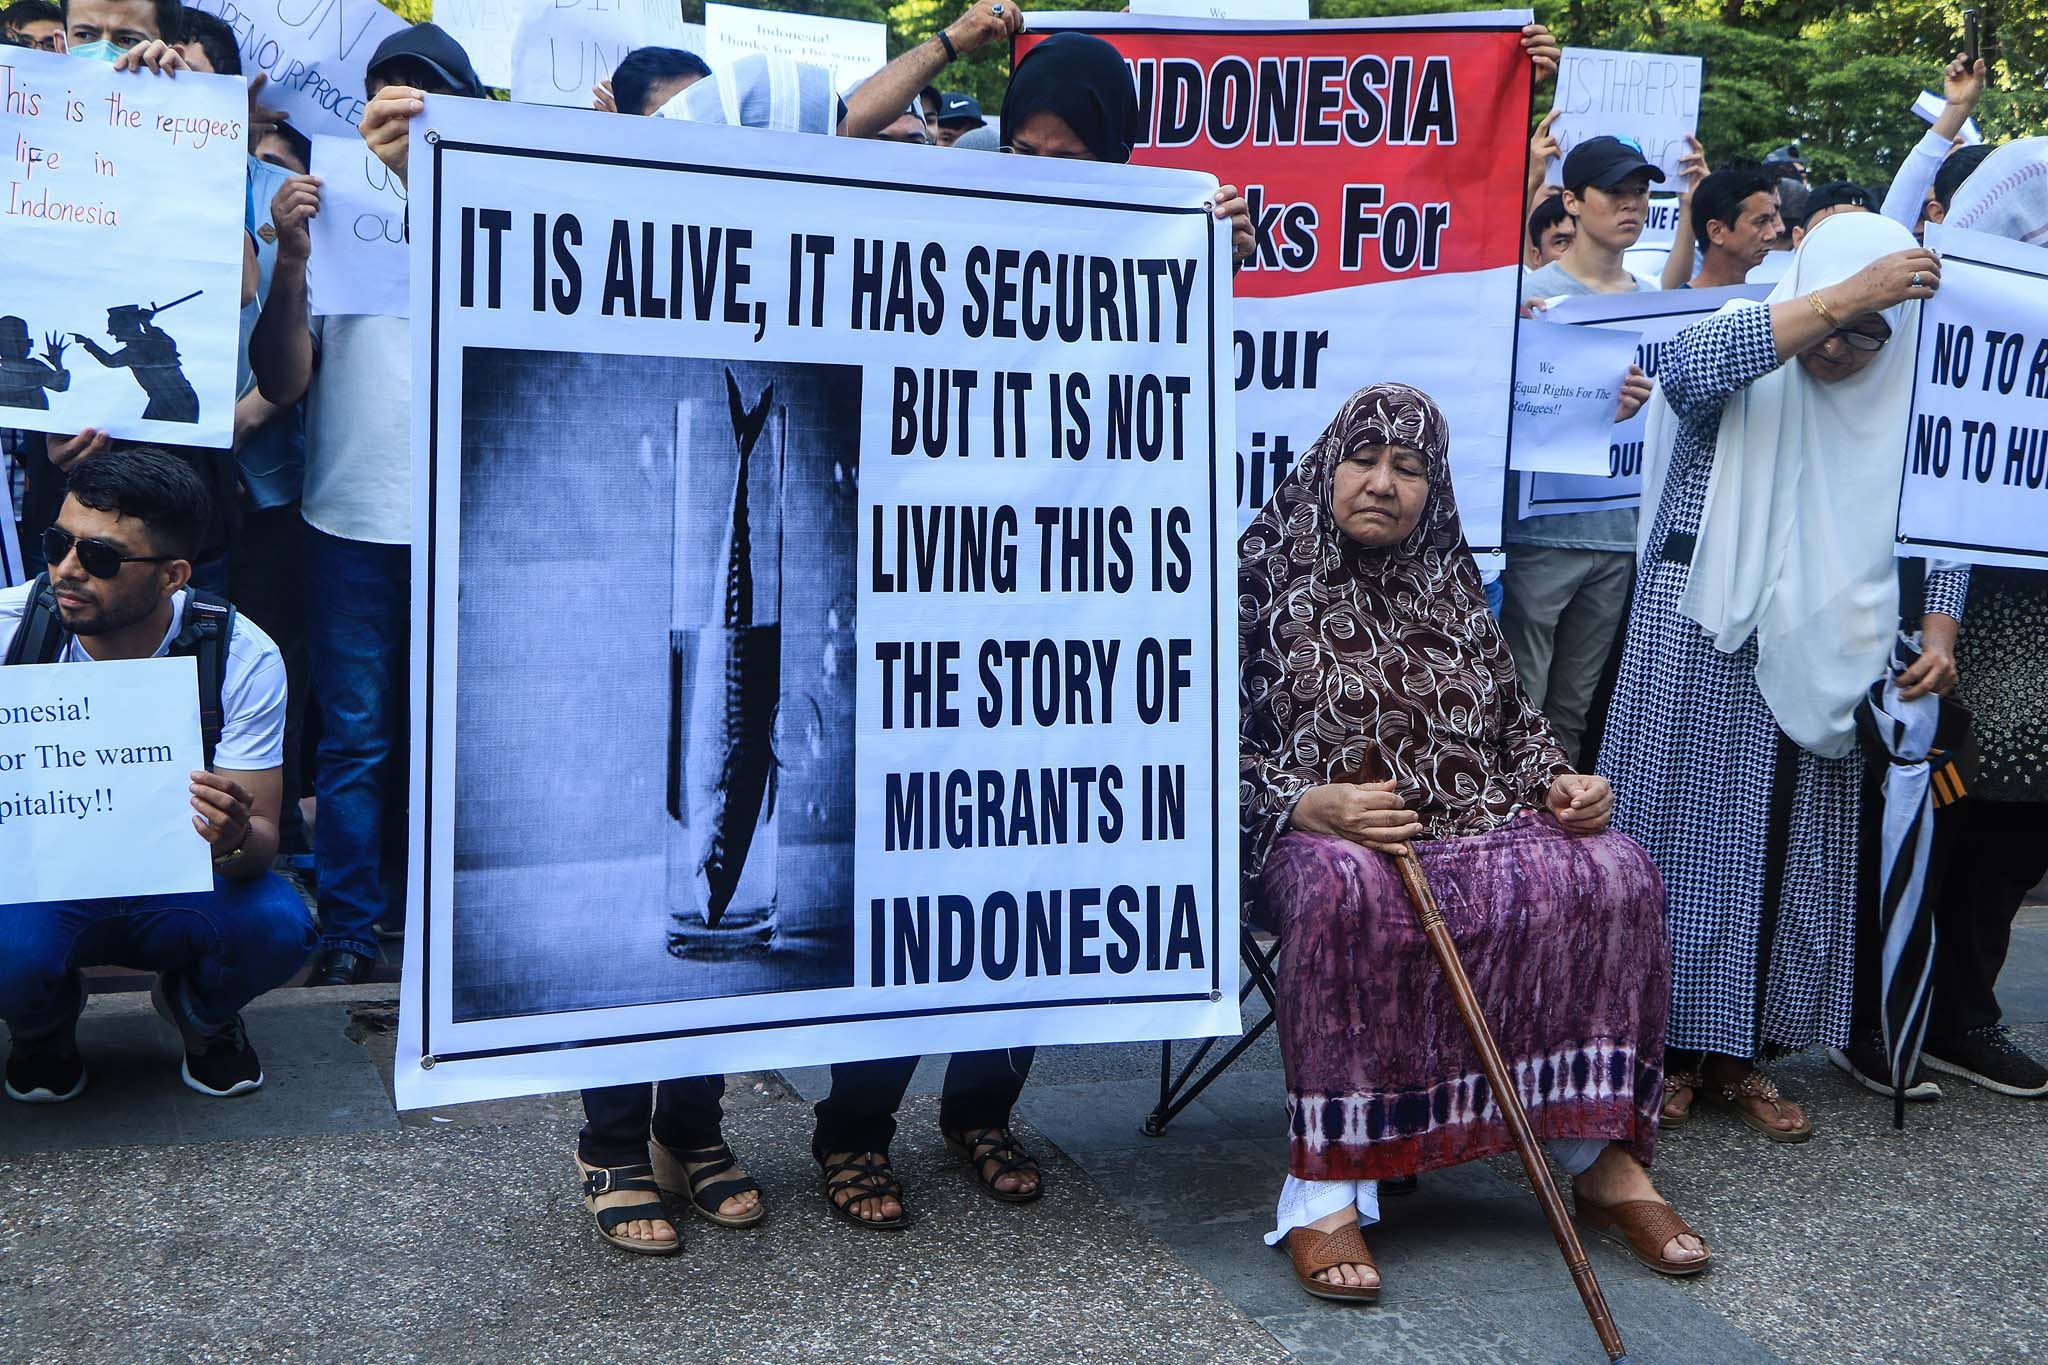 A group of people protest, many of whom are holding signs. A woman sits beside one of the placards, on a fold-out chair, holding a walking stick. The sign beside her depicts a fish in a glass of water with the text 'It is alive, it has security but it is not living this is the story of migrants in Indonesia'.